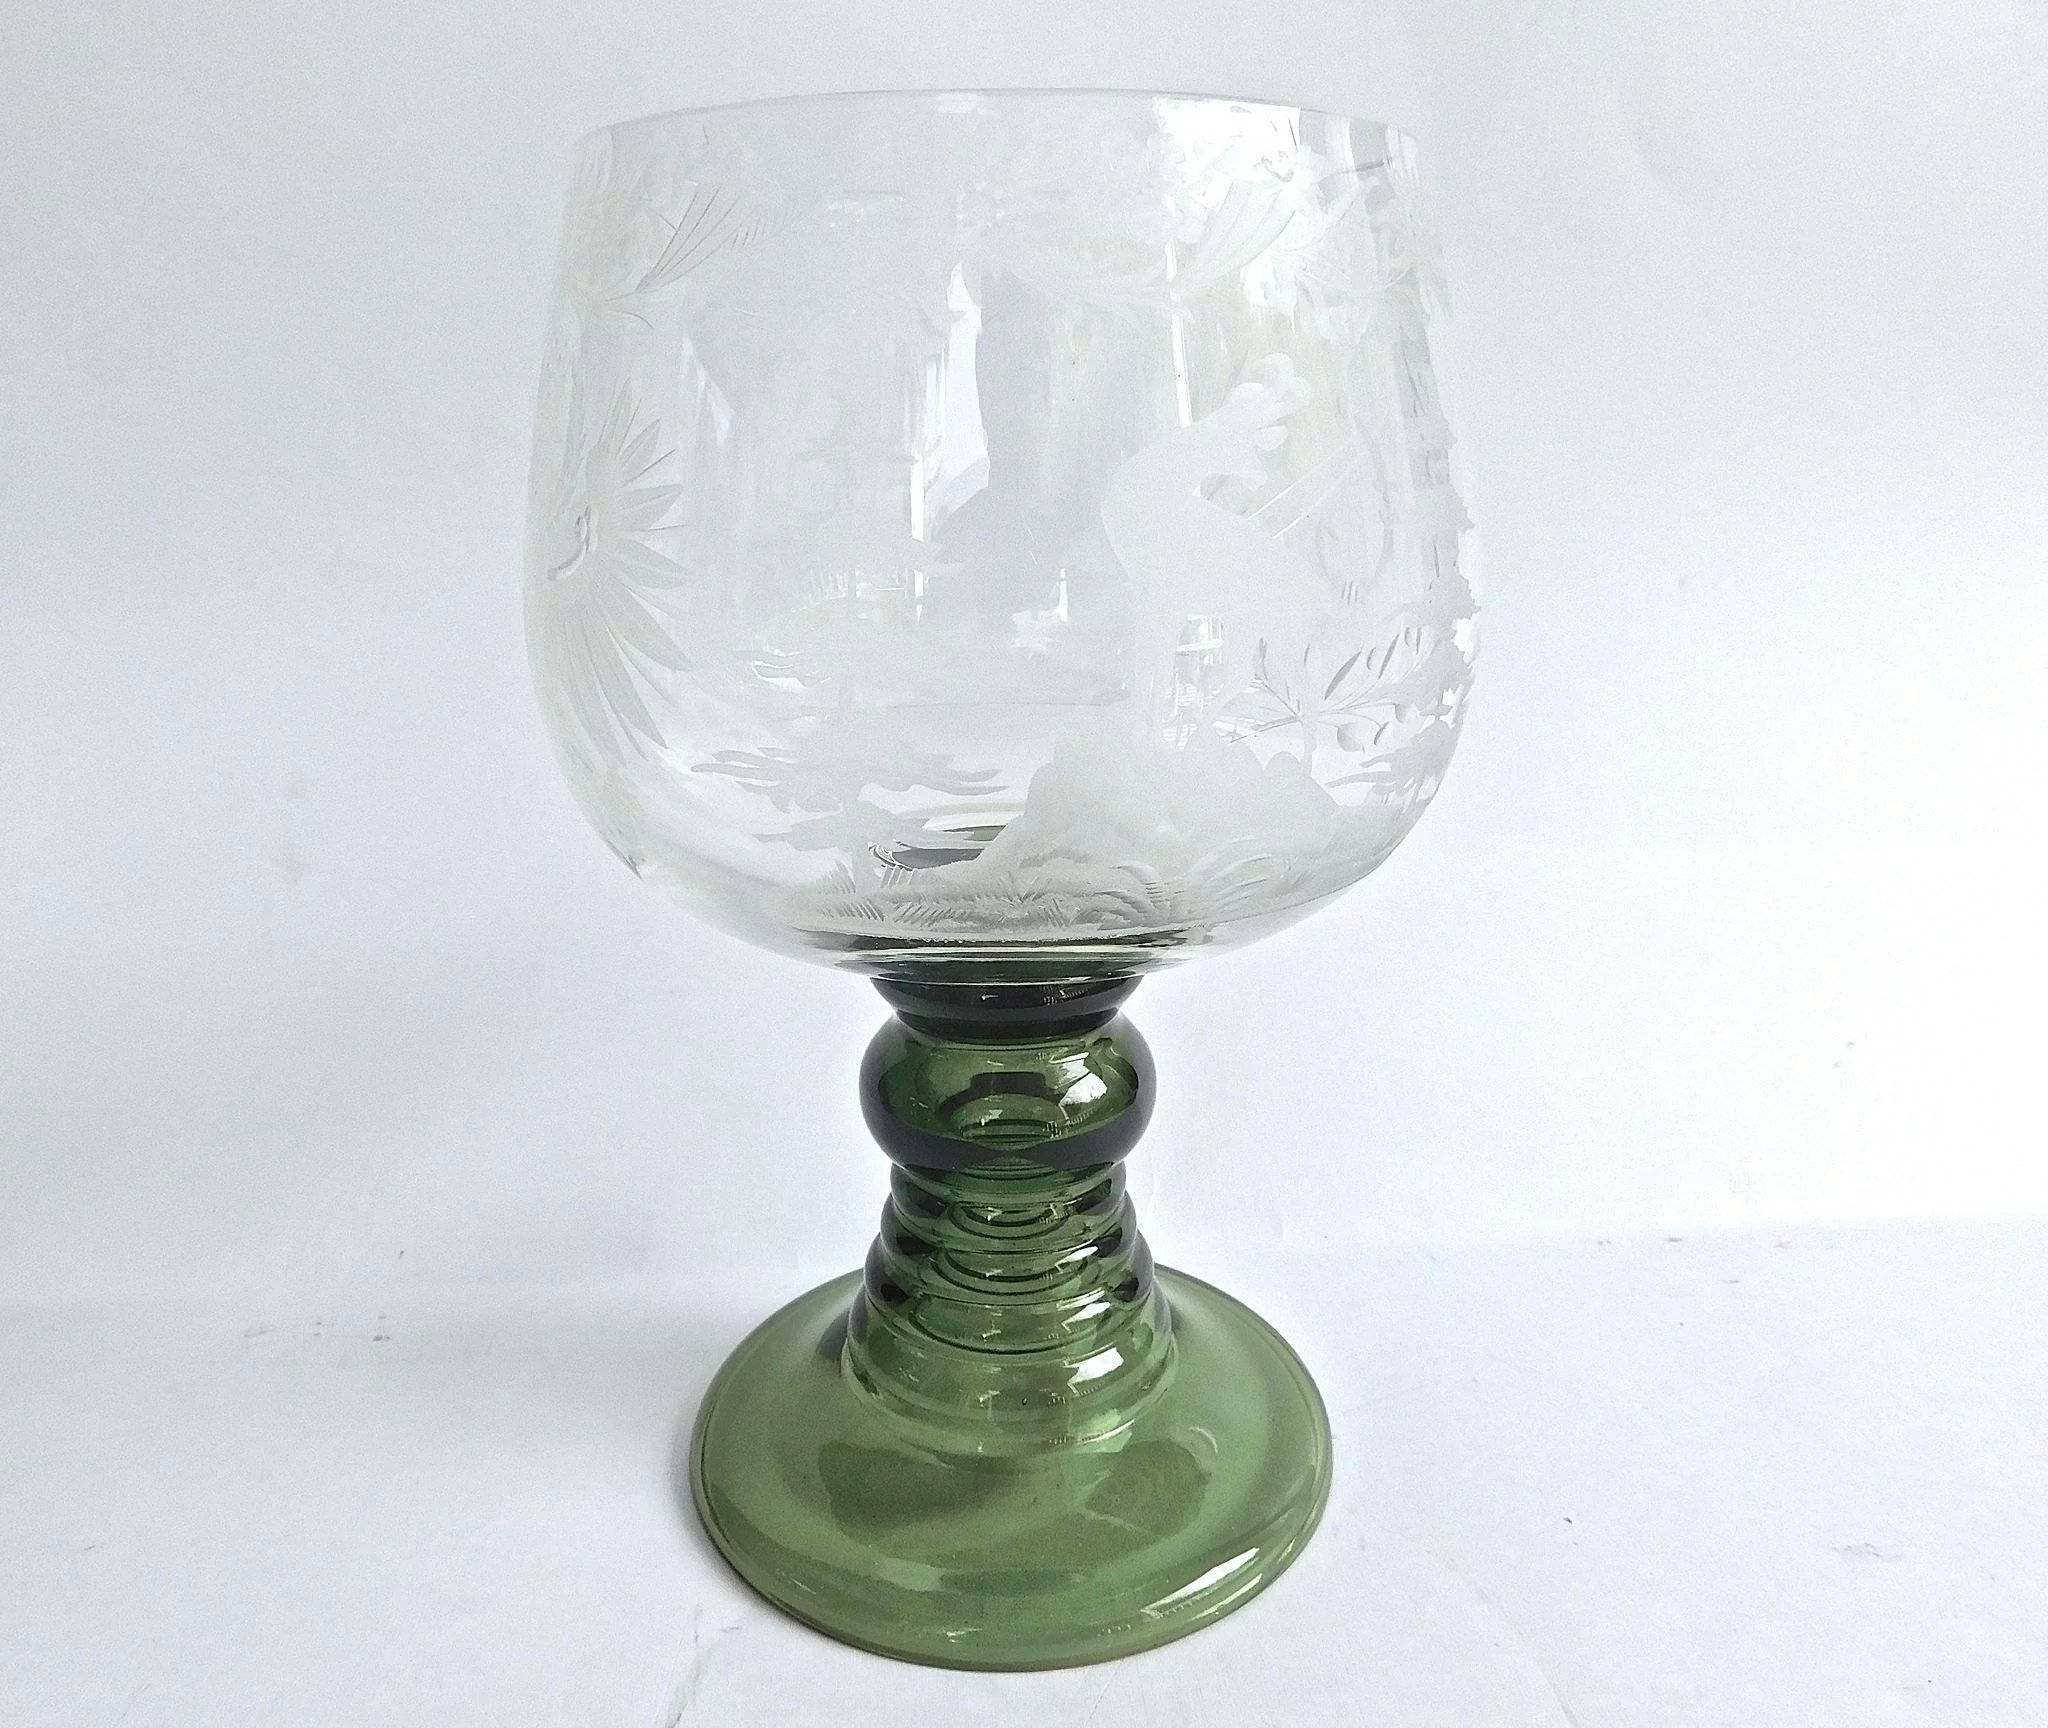 alvar dining amorphic savoy entertaining vases z glass vase clear pair of id at furniture f aalto